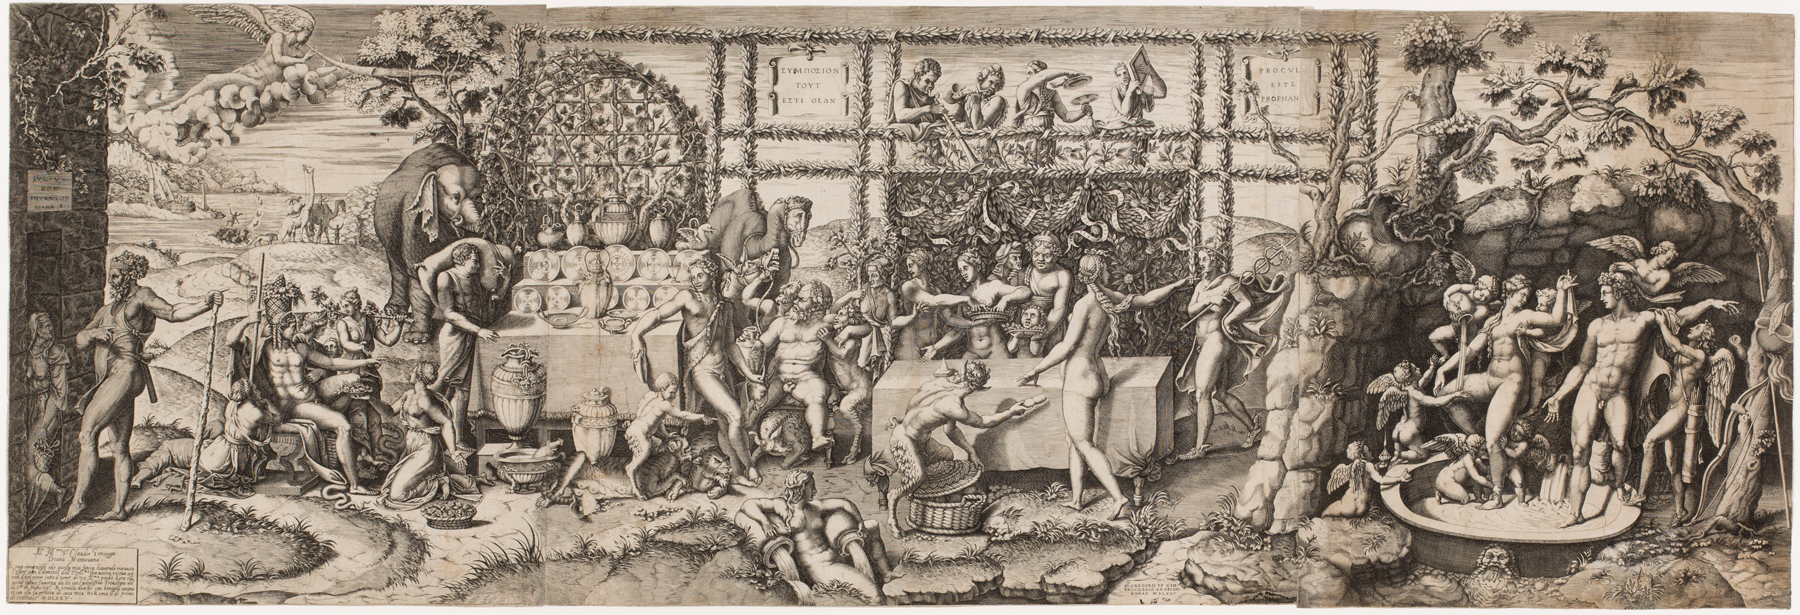 Scene of people laying around and eating, drinking, and talking